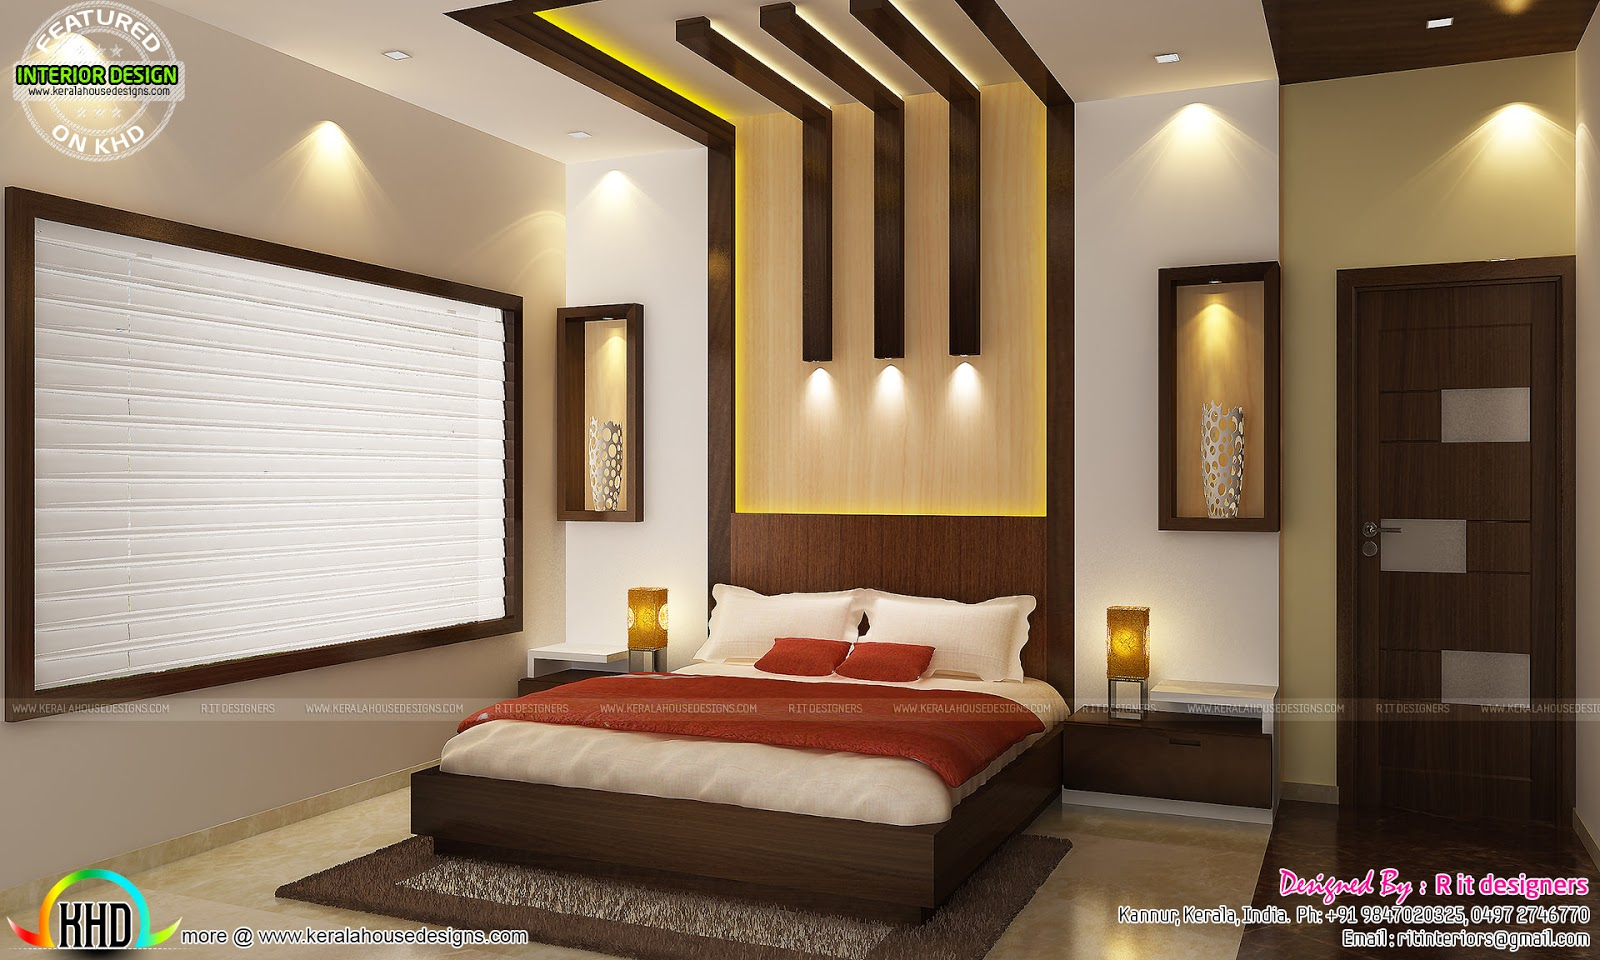 Kitchen living bedroom dining interior decor kerala for Bedroom interior pictures